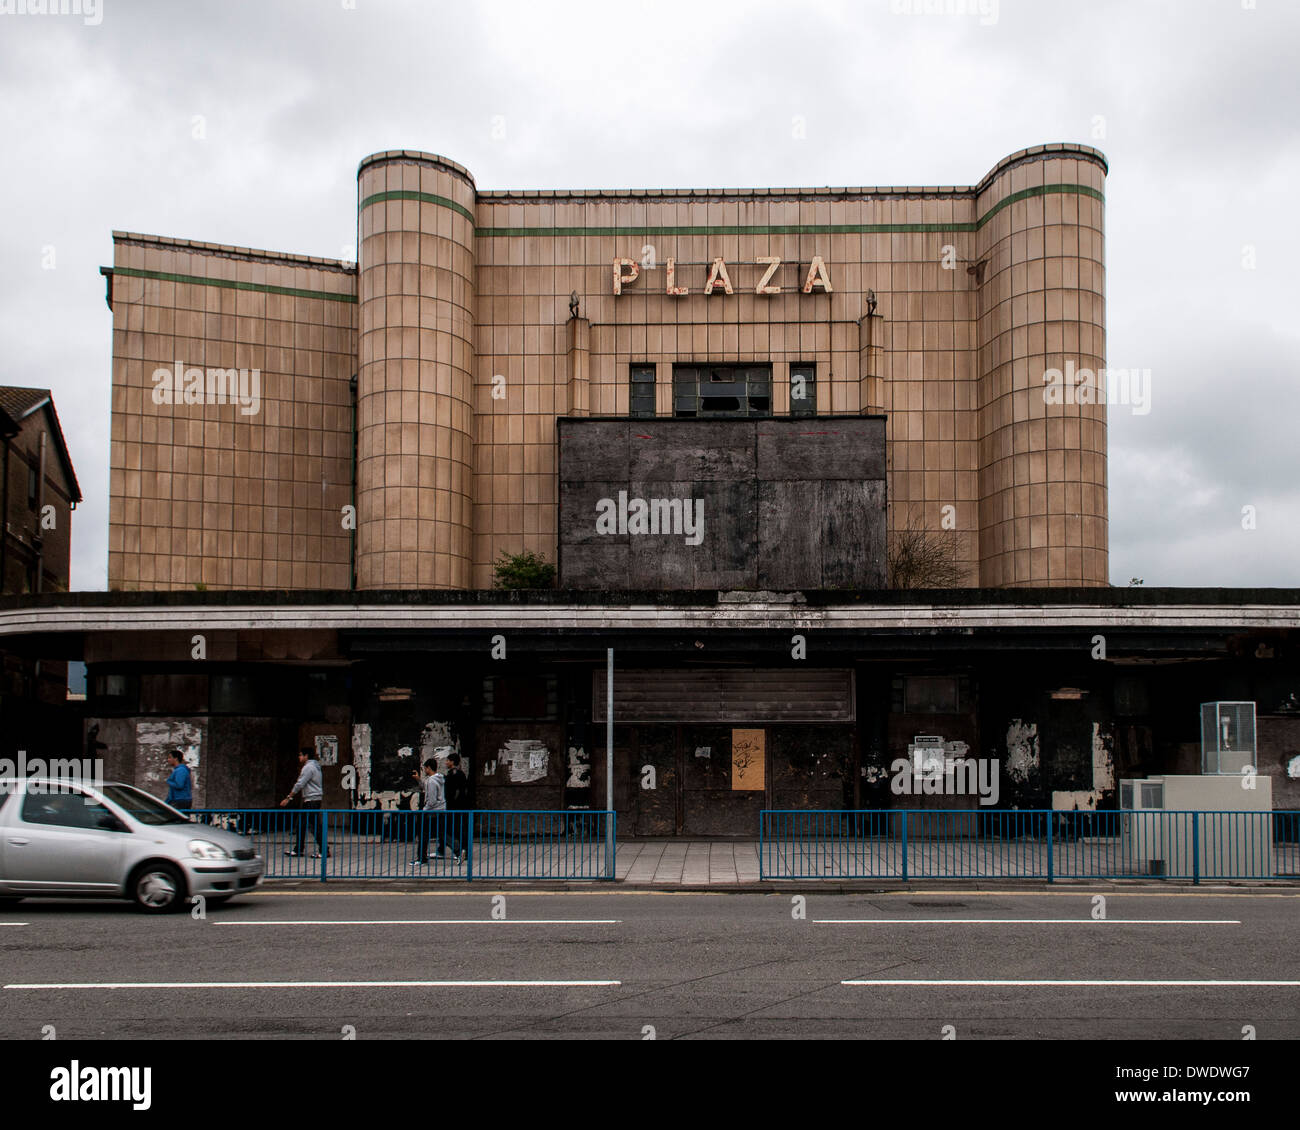 Port Talbot, Port Talbot, United Kingdom. Architect: Various, 2014. Derelict Plaza cinema. Stock Photo